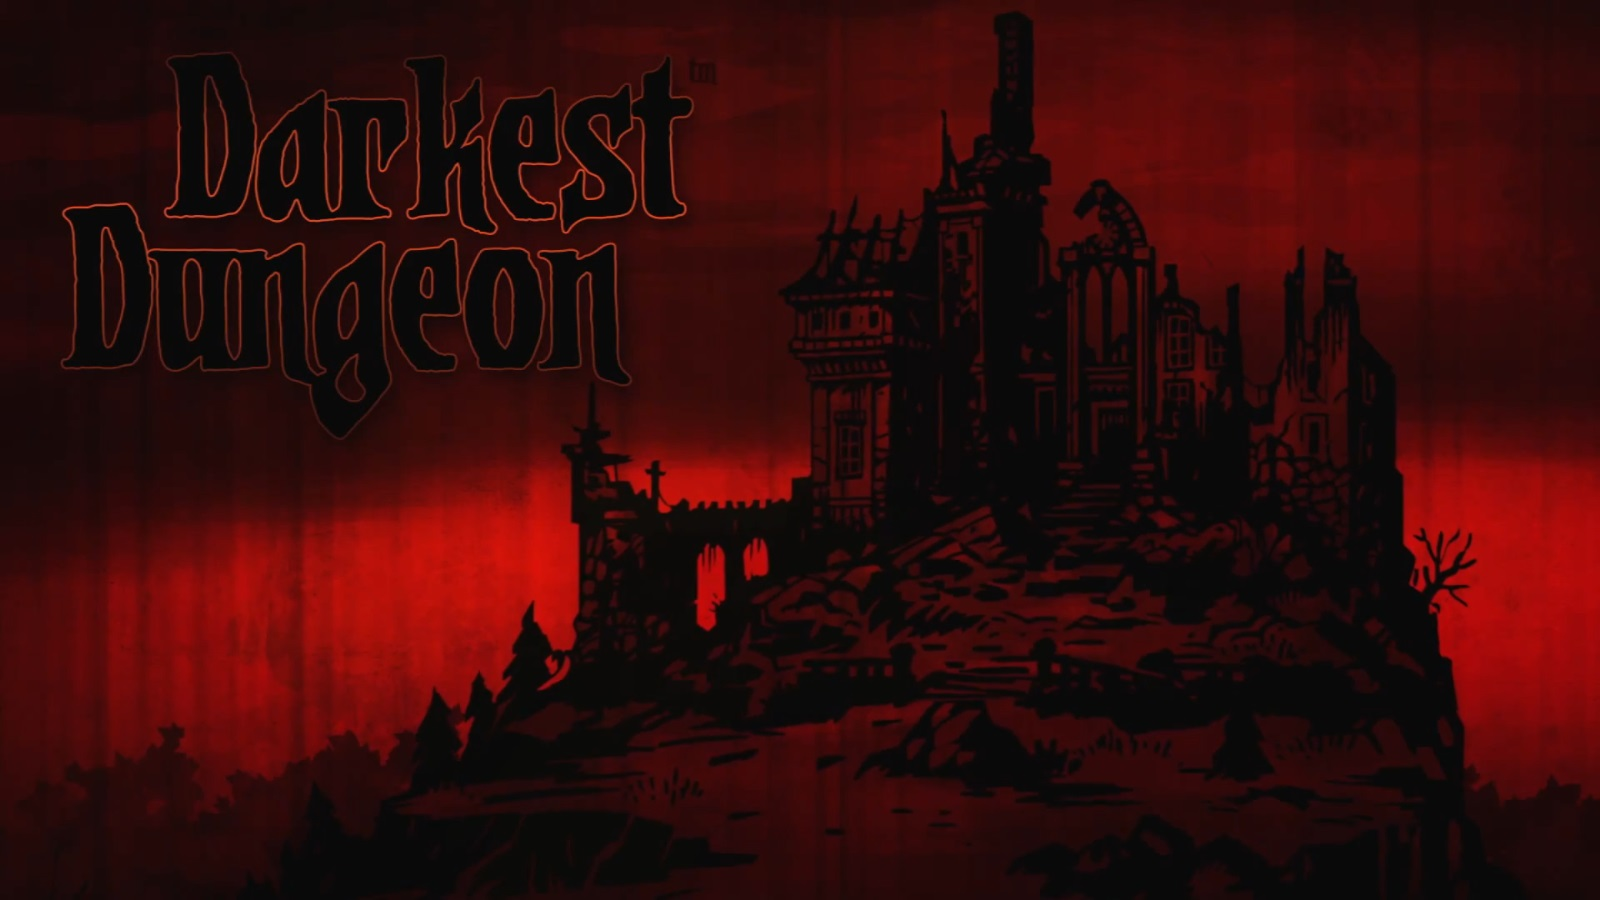 Fall Time Wallpaper Darkest Dungeon Review There S No Hope In This Hell But